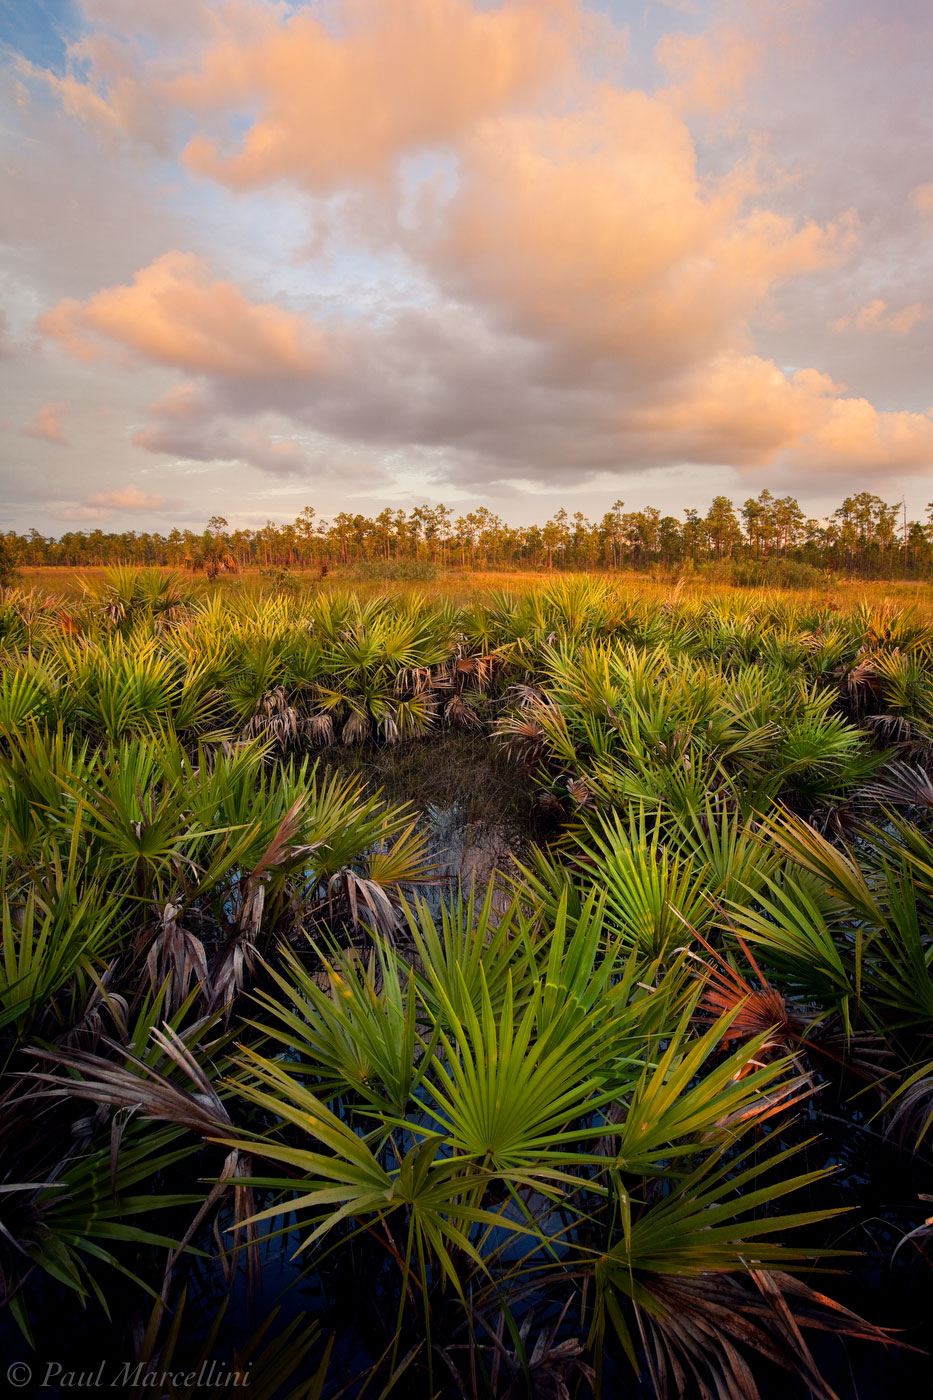 everglades, palmetto, serenoa repens, sunset, Florida, nature, photography, florida national parks, photo